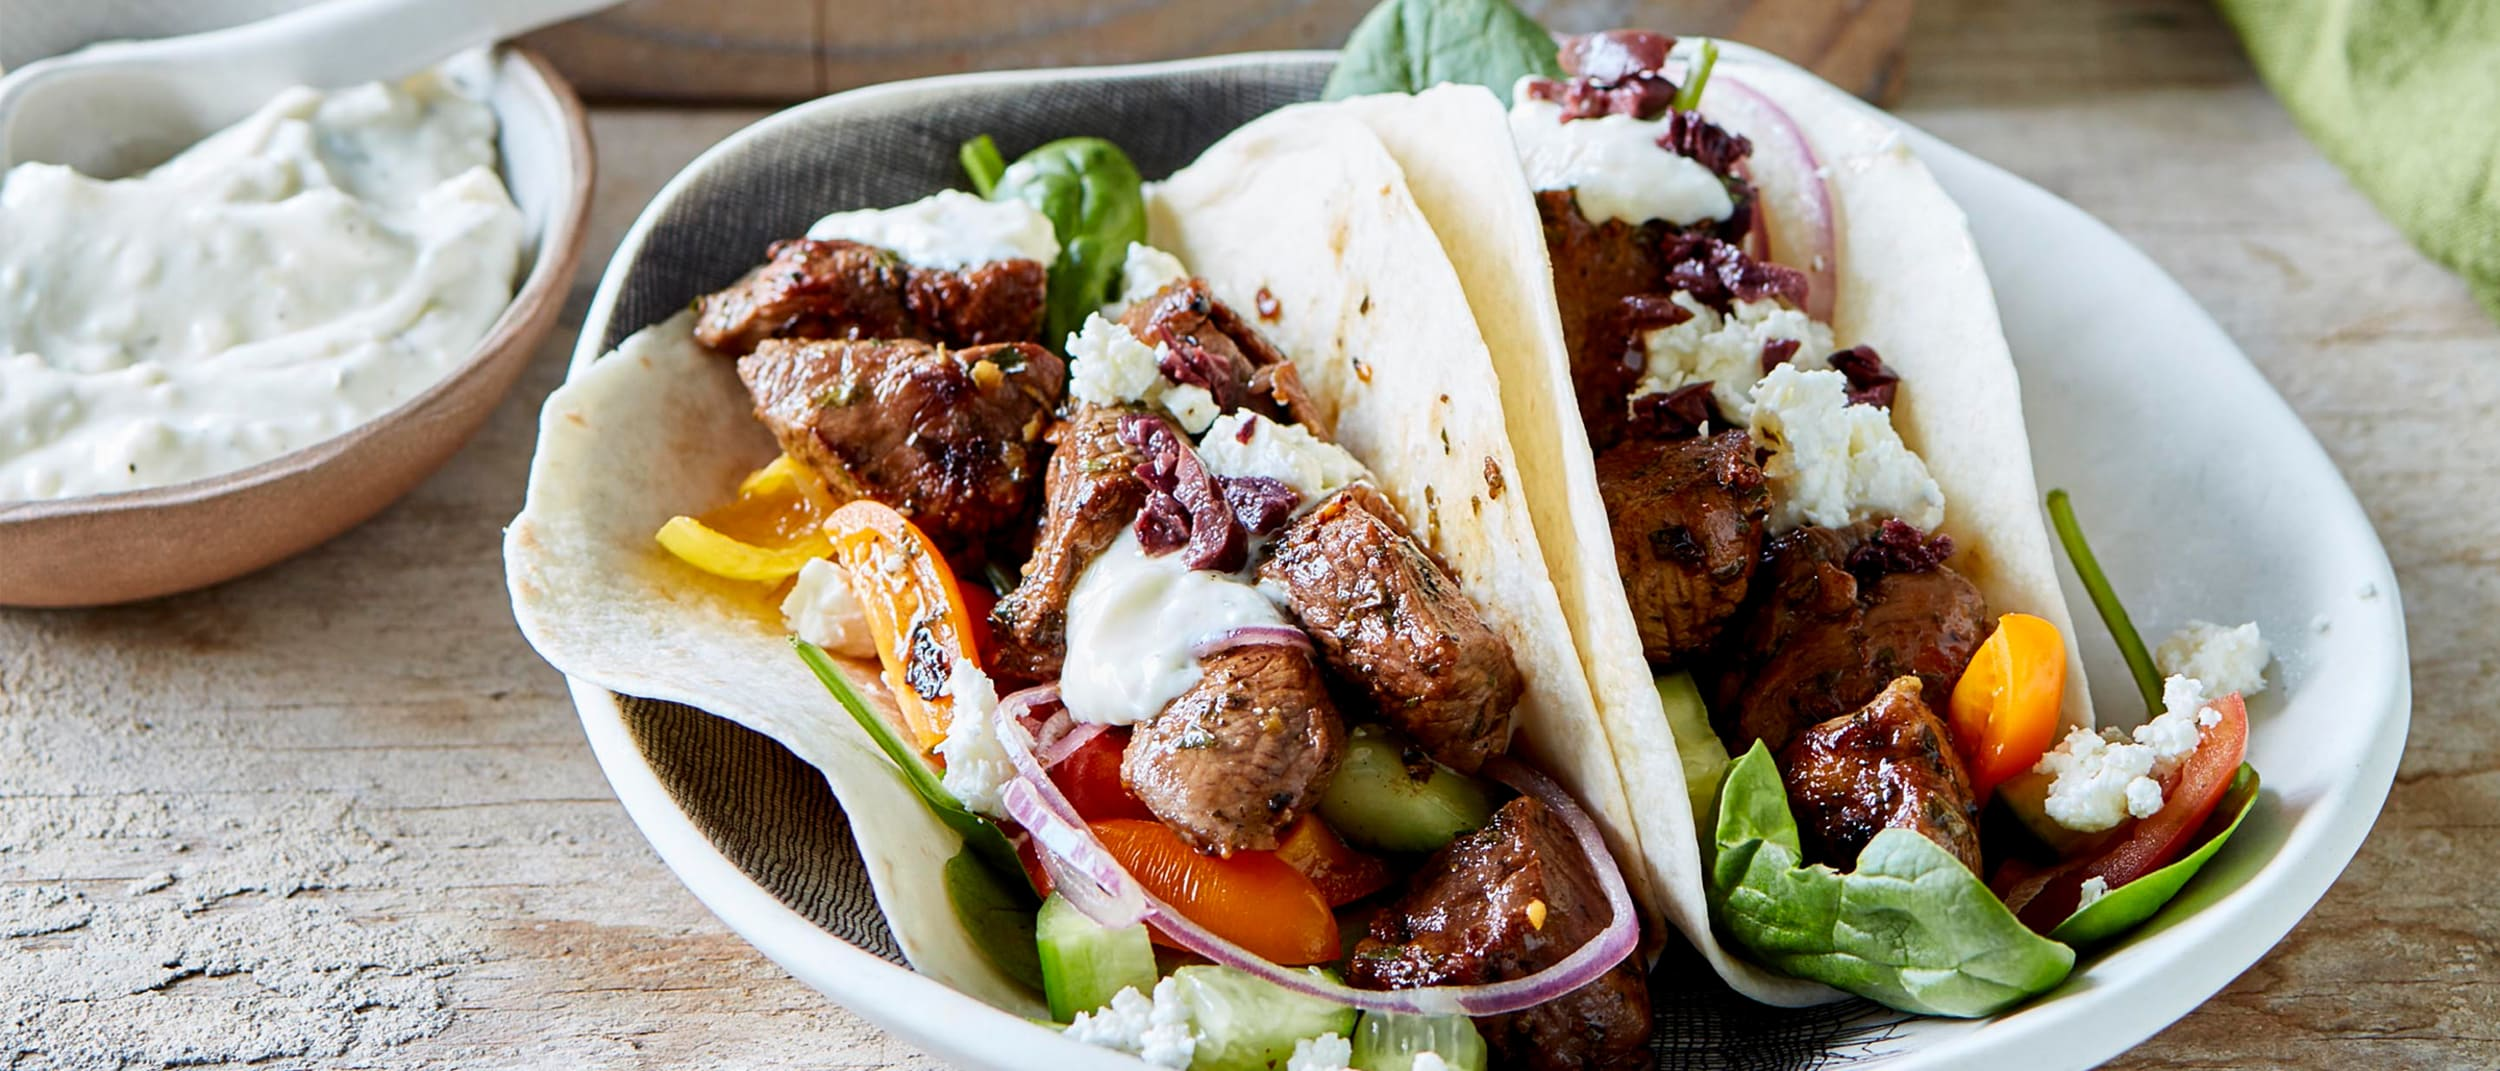 Greek lamb and feta tacos